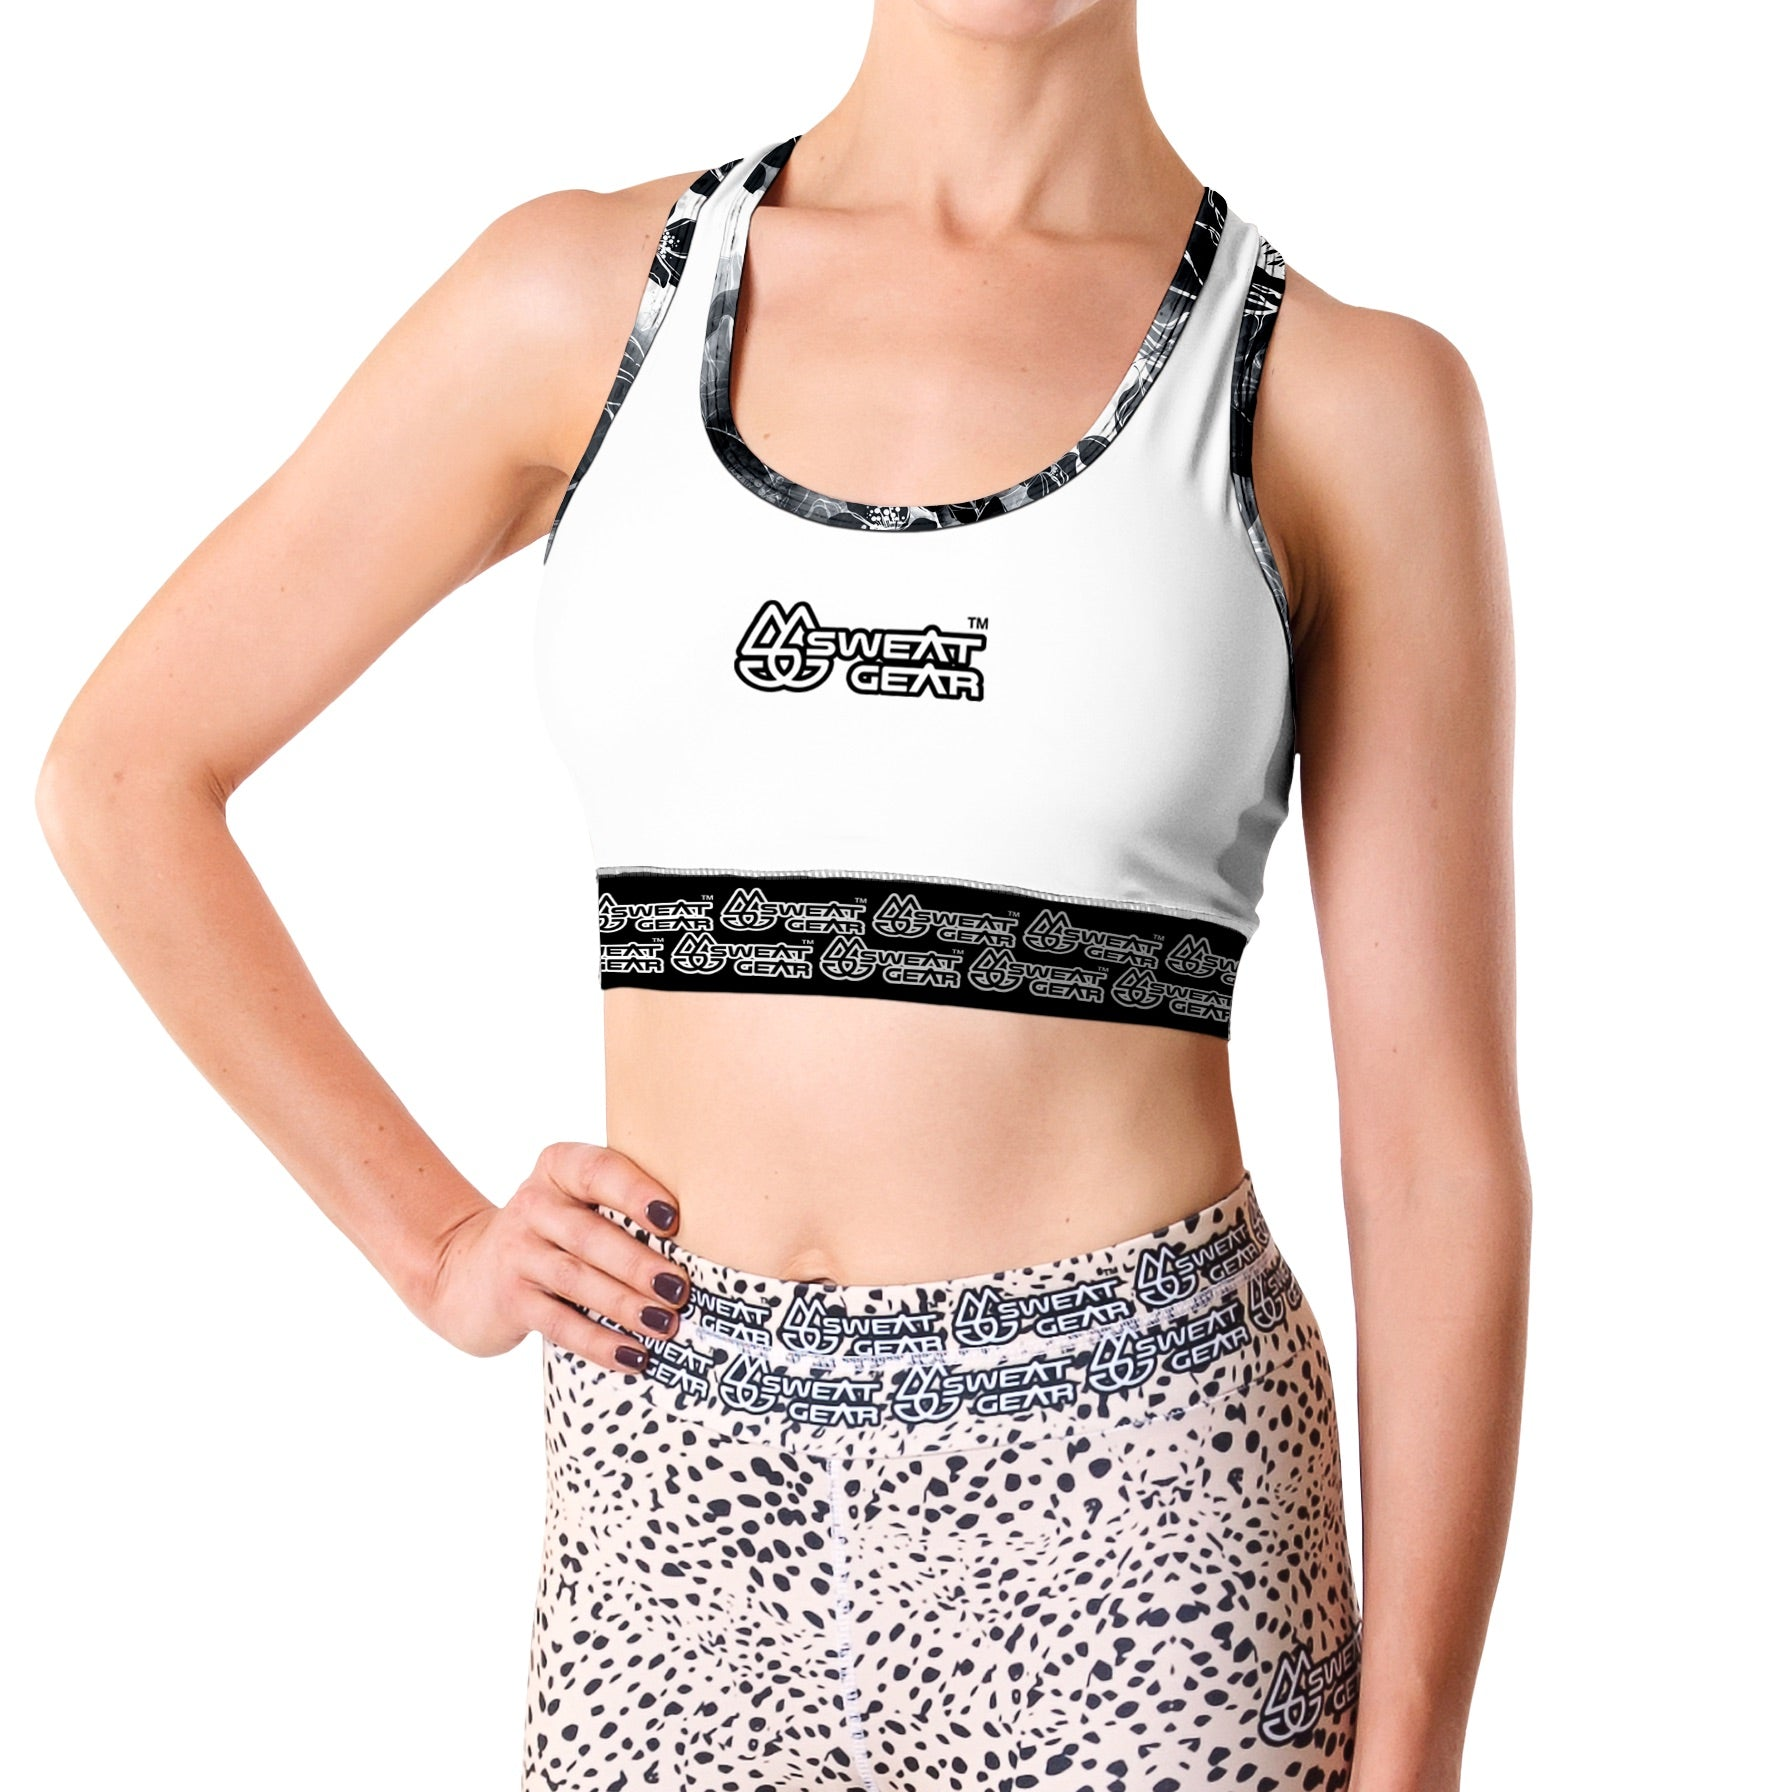 Mystic White Crop Top (Sweatgear)